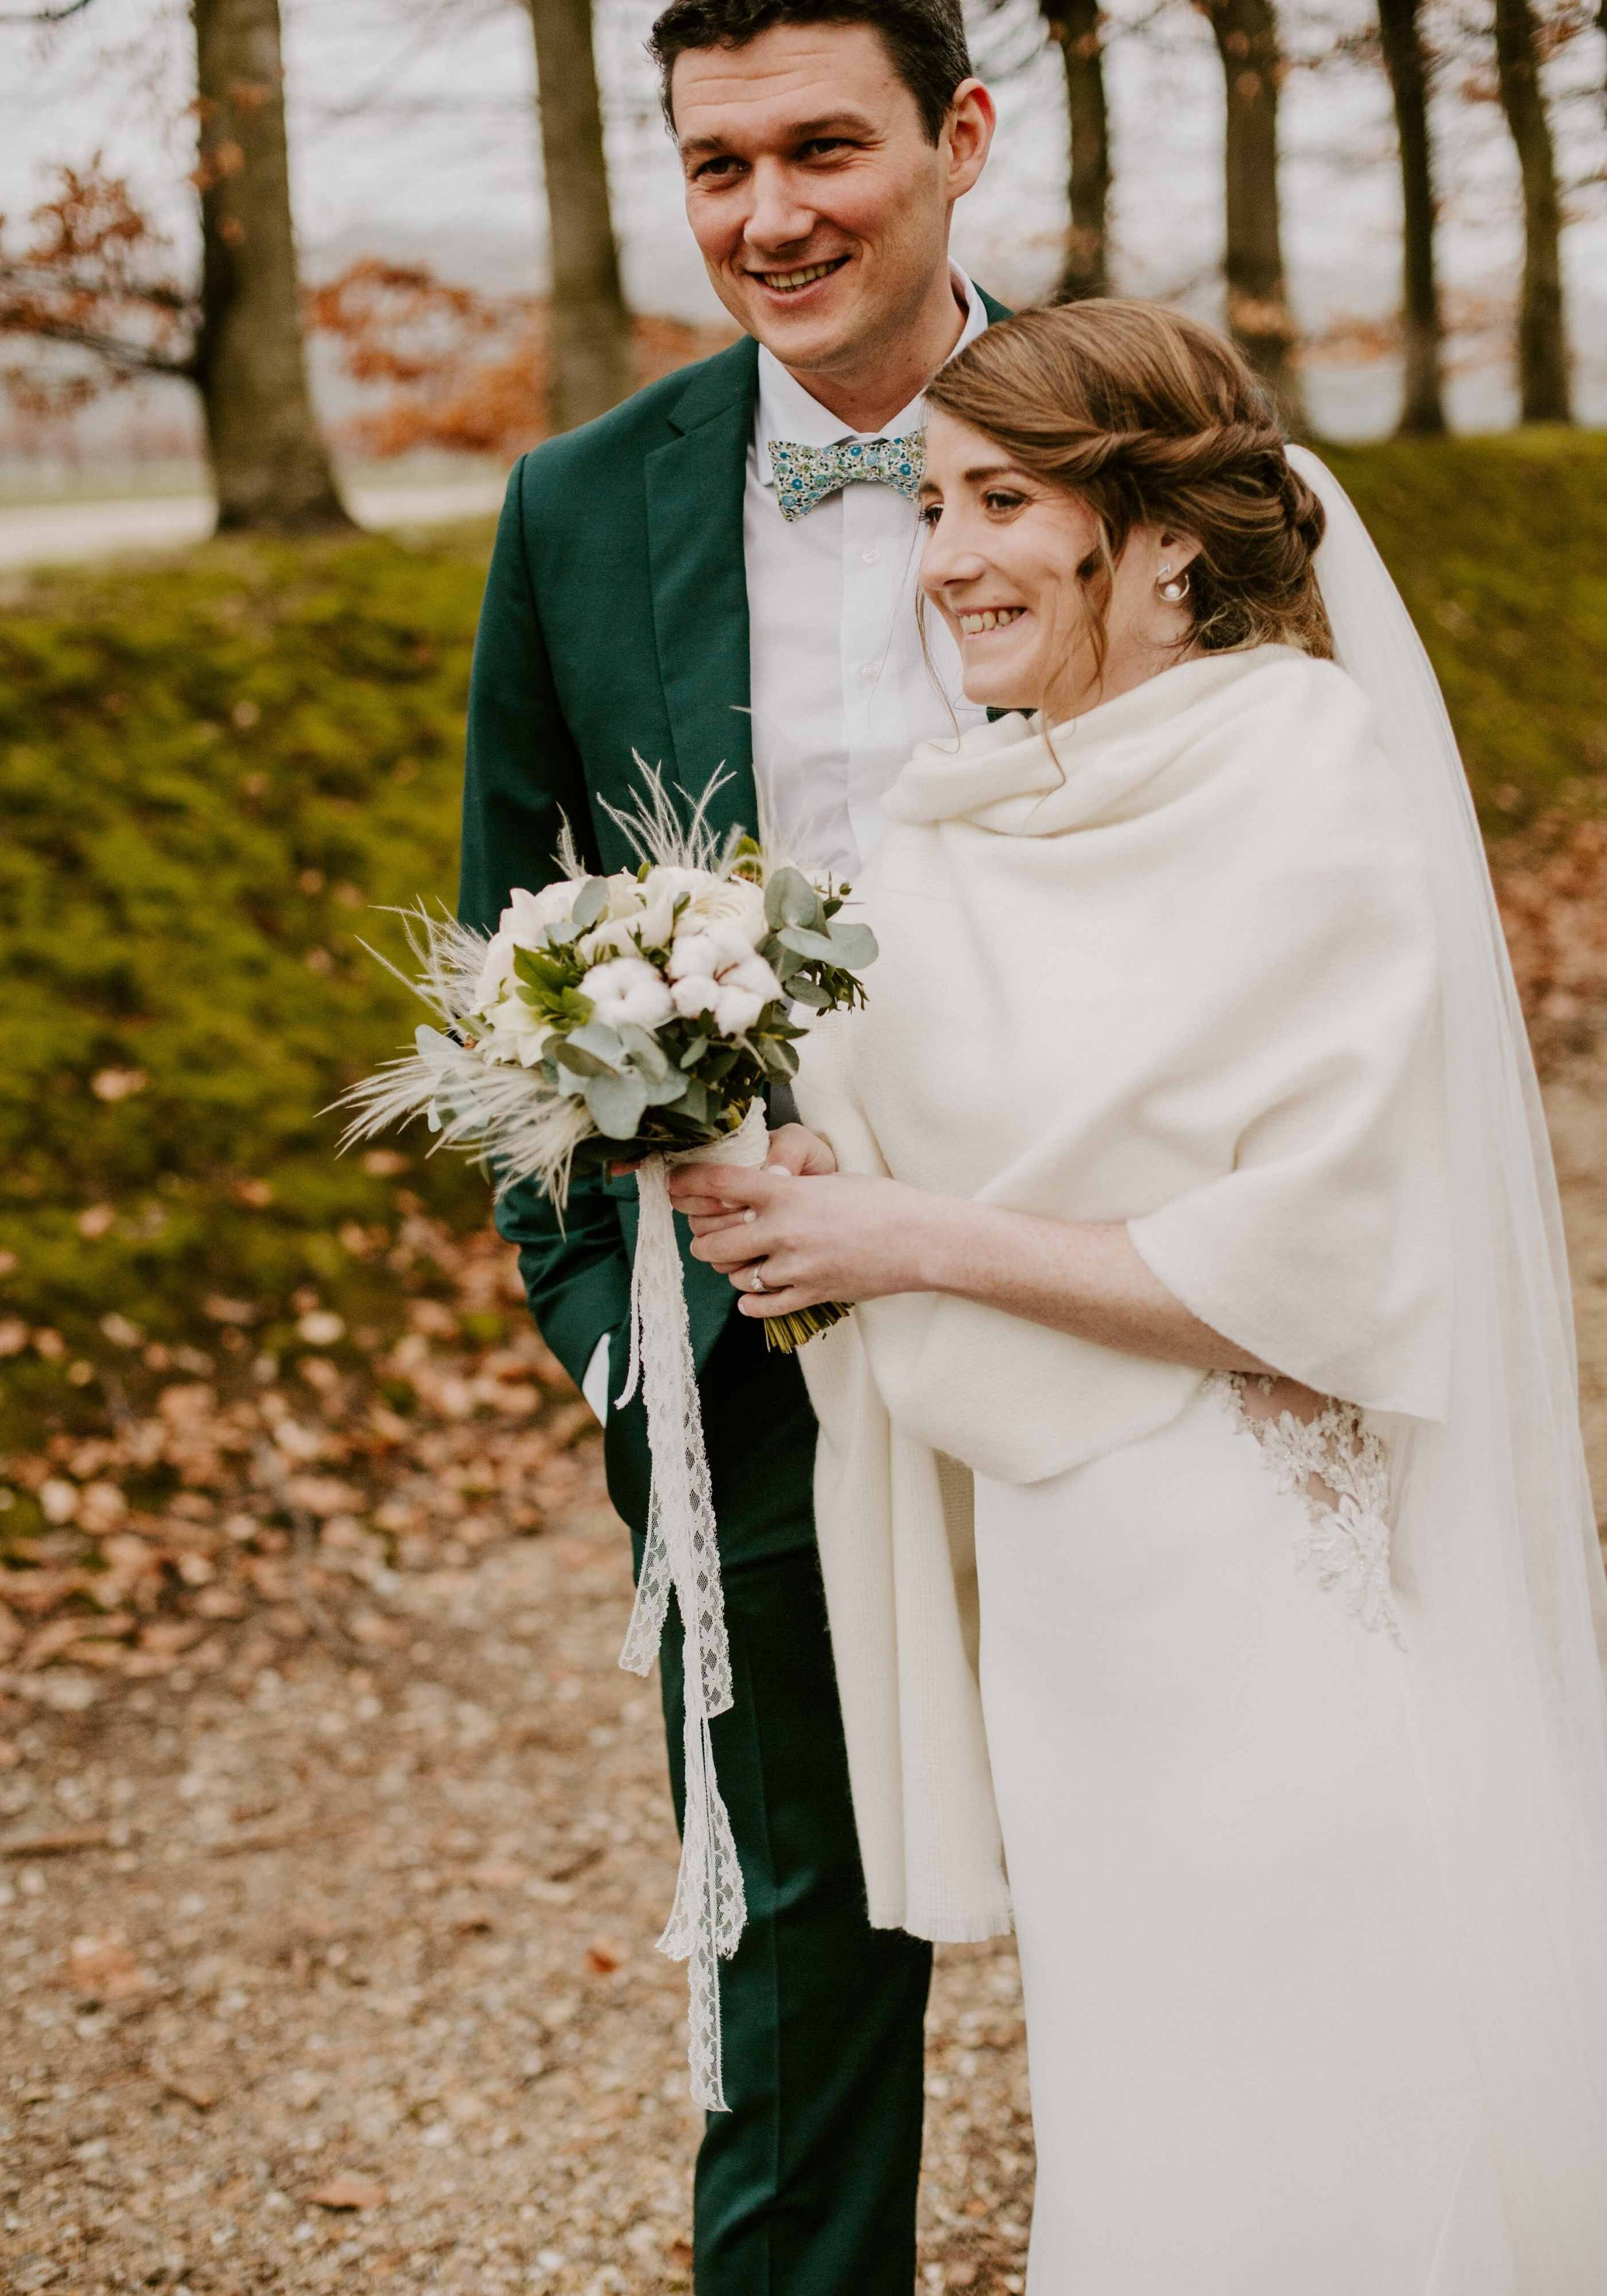 Domaine des Planches Mathieu Marangoni Winter Wedding